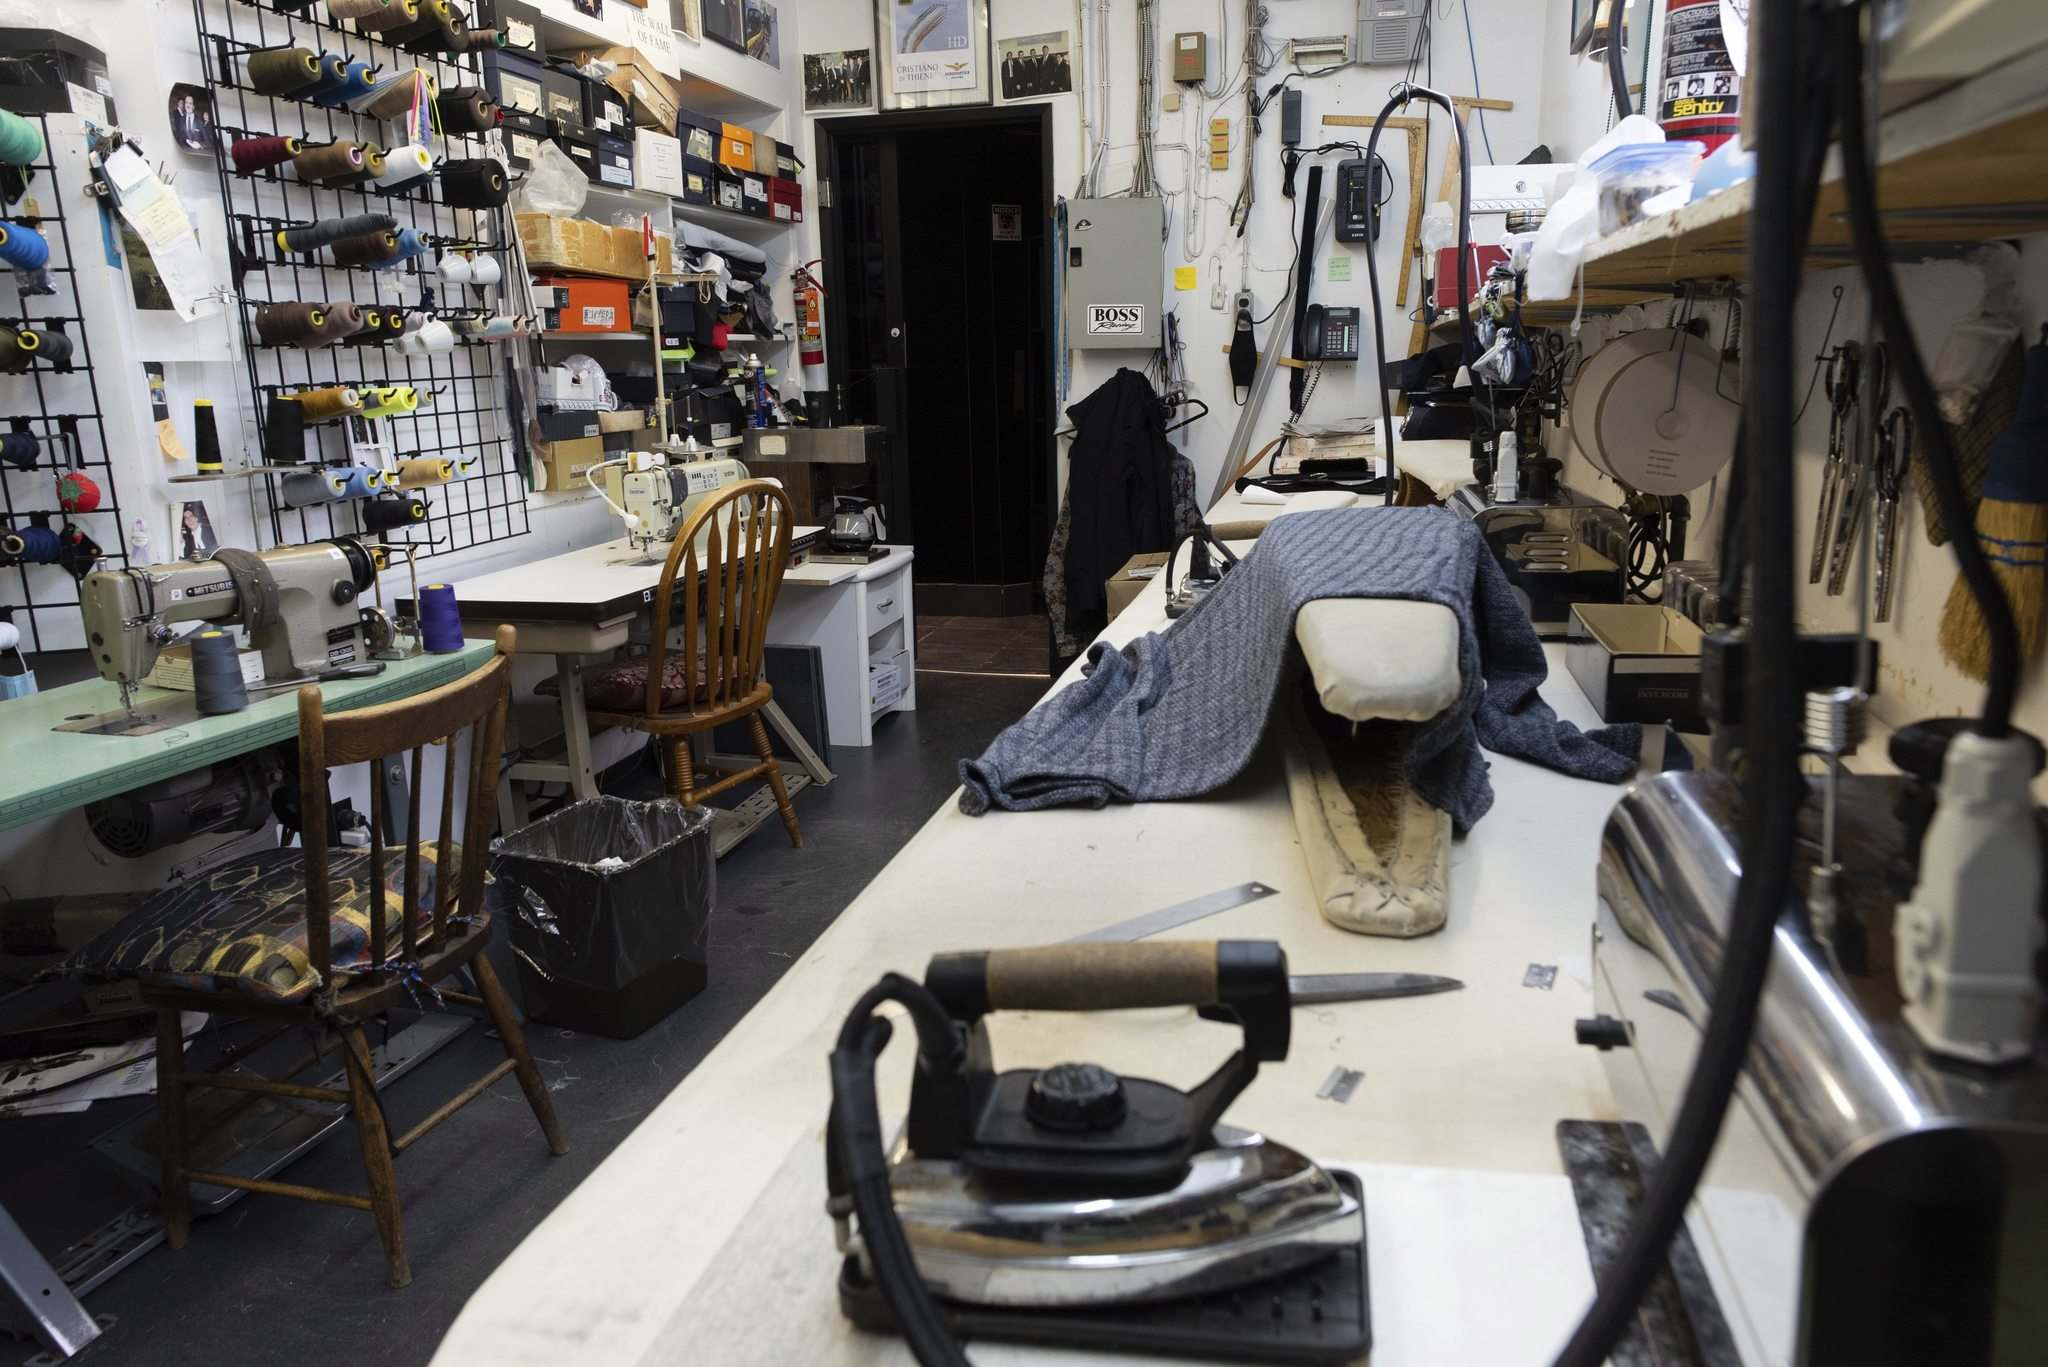 The tailor shop can accommodate nearly any needed alteration. (Jesse Boily / Winnipeg Free Press)</p>